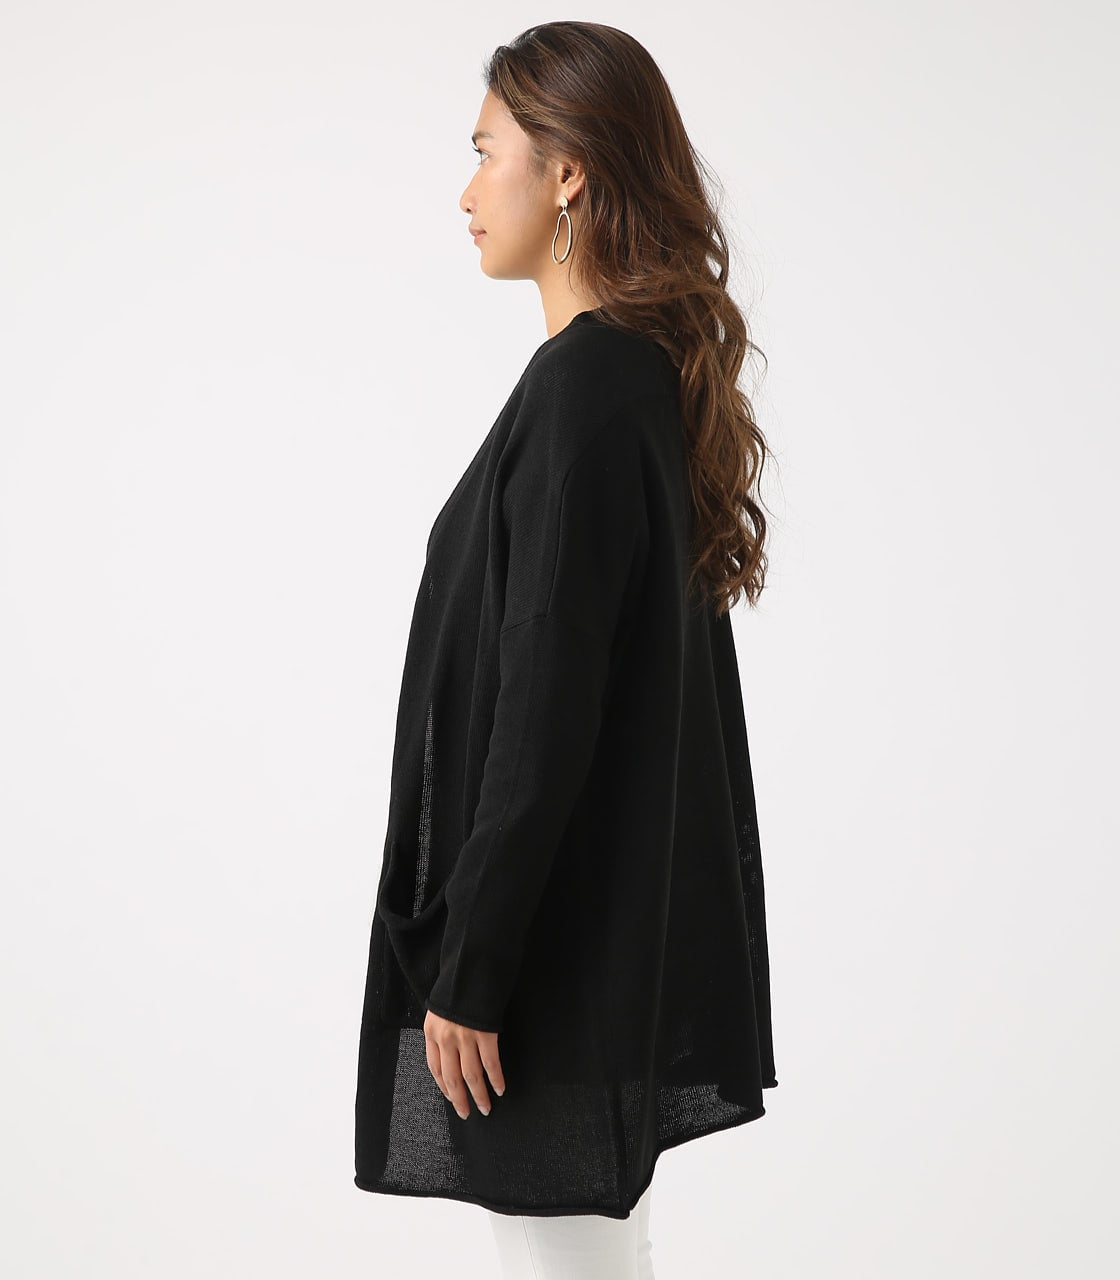 SHEER KNIT CARDIGAN 詳細画像 BLK 6